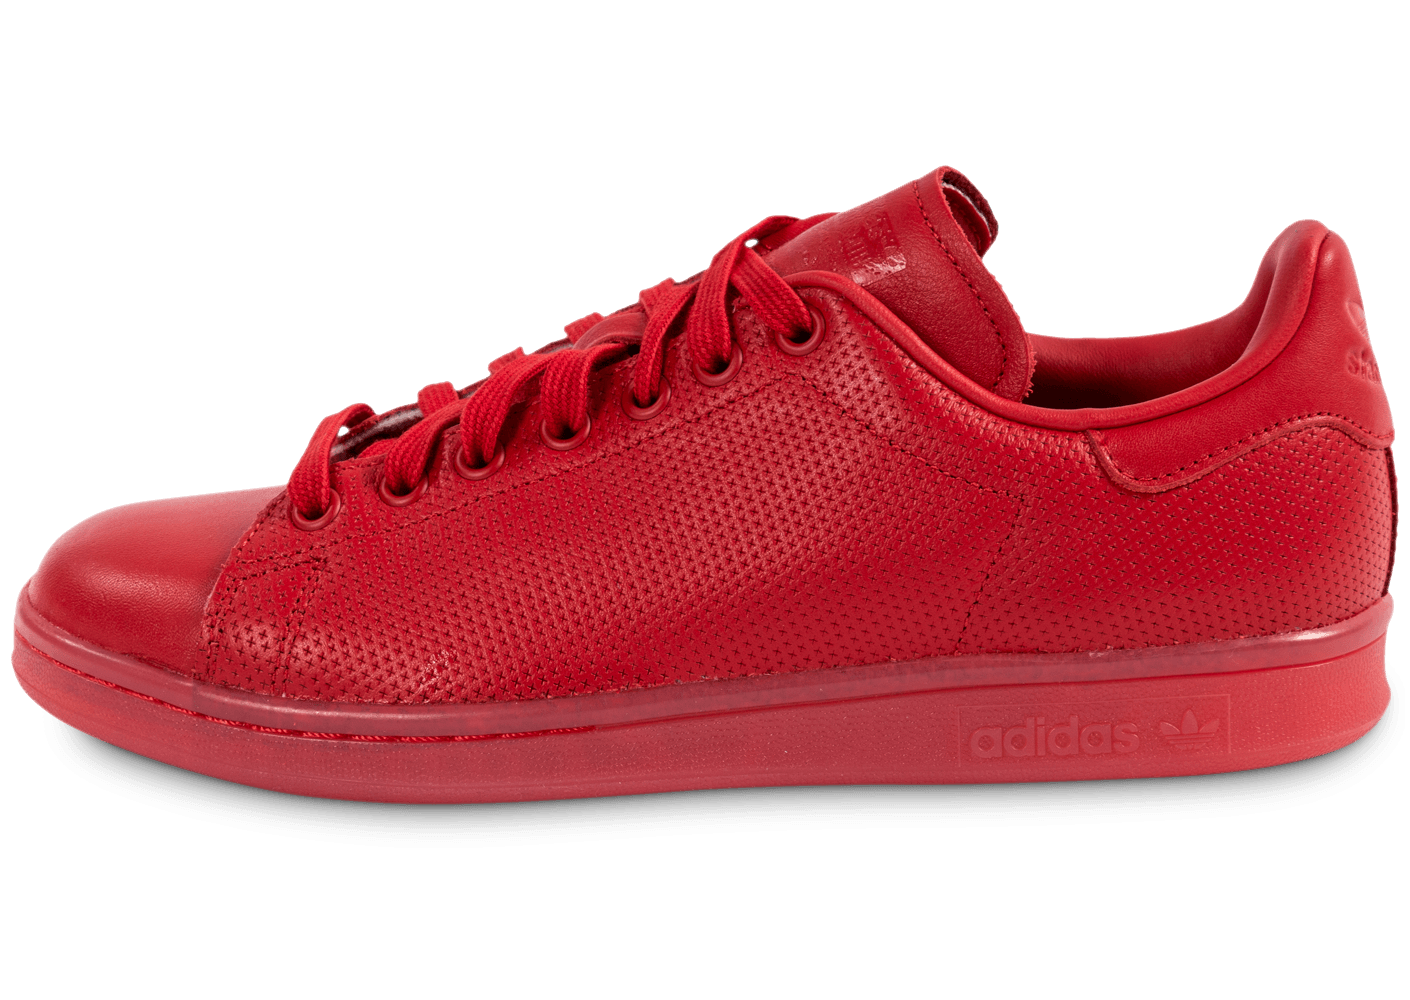 adidas stan smith homme rouge,Chaussures & vêtements Adidas pas cher